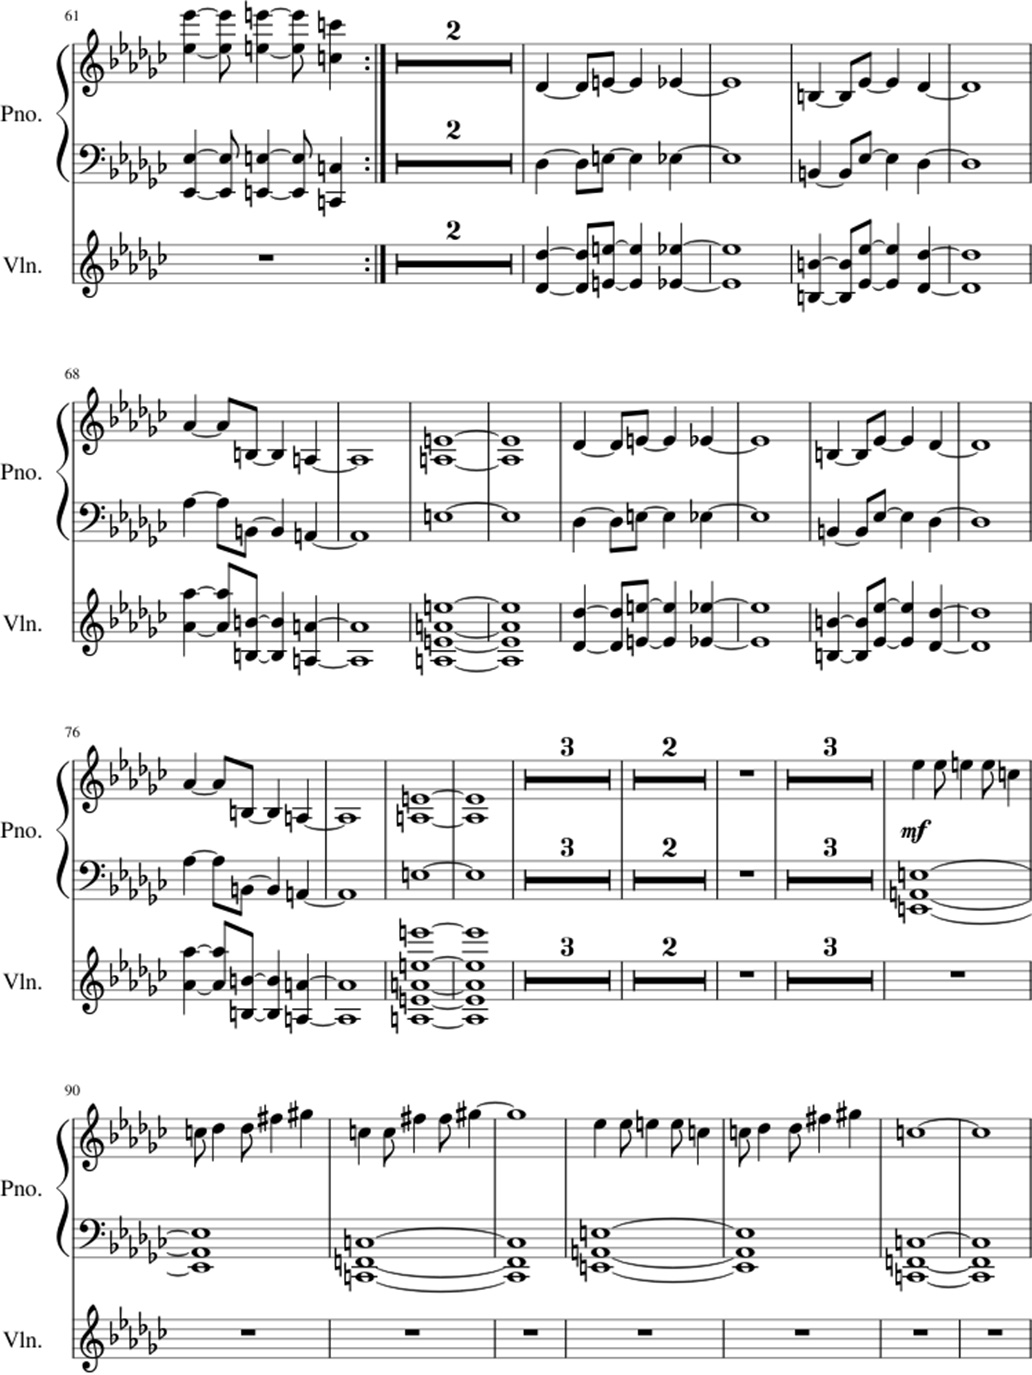 Old Souls sheet music notes 3